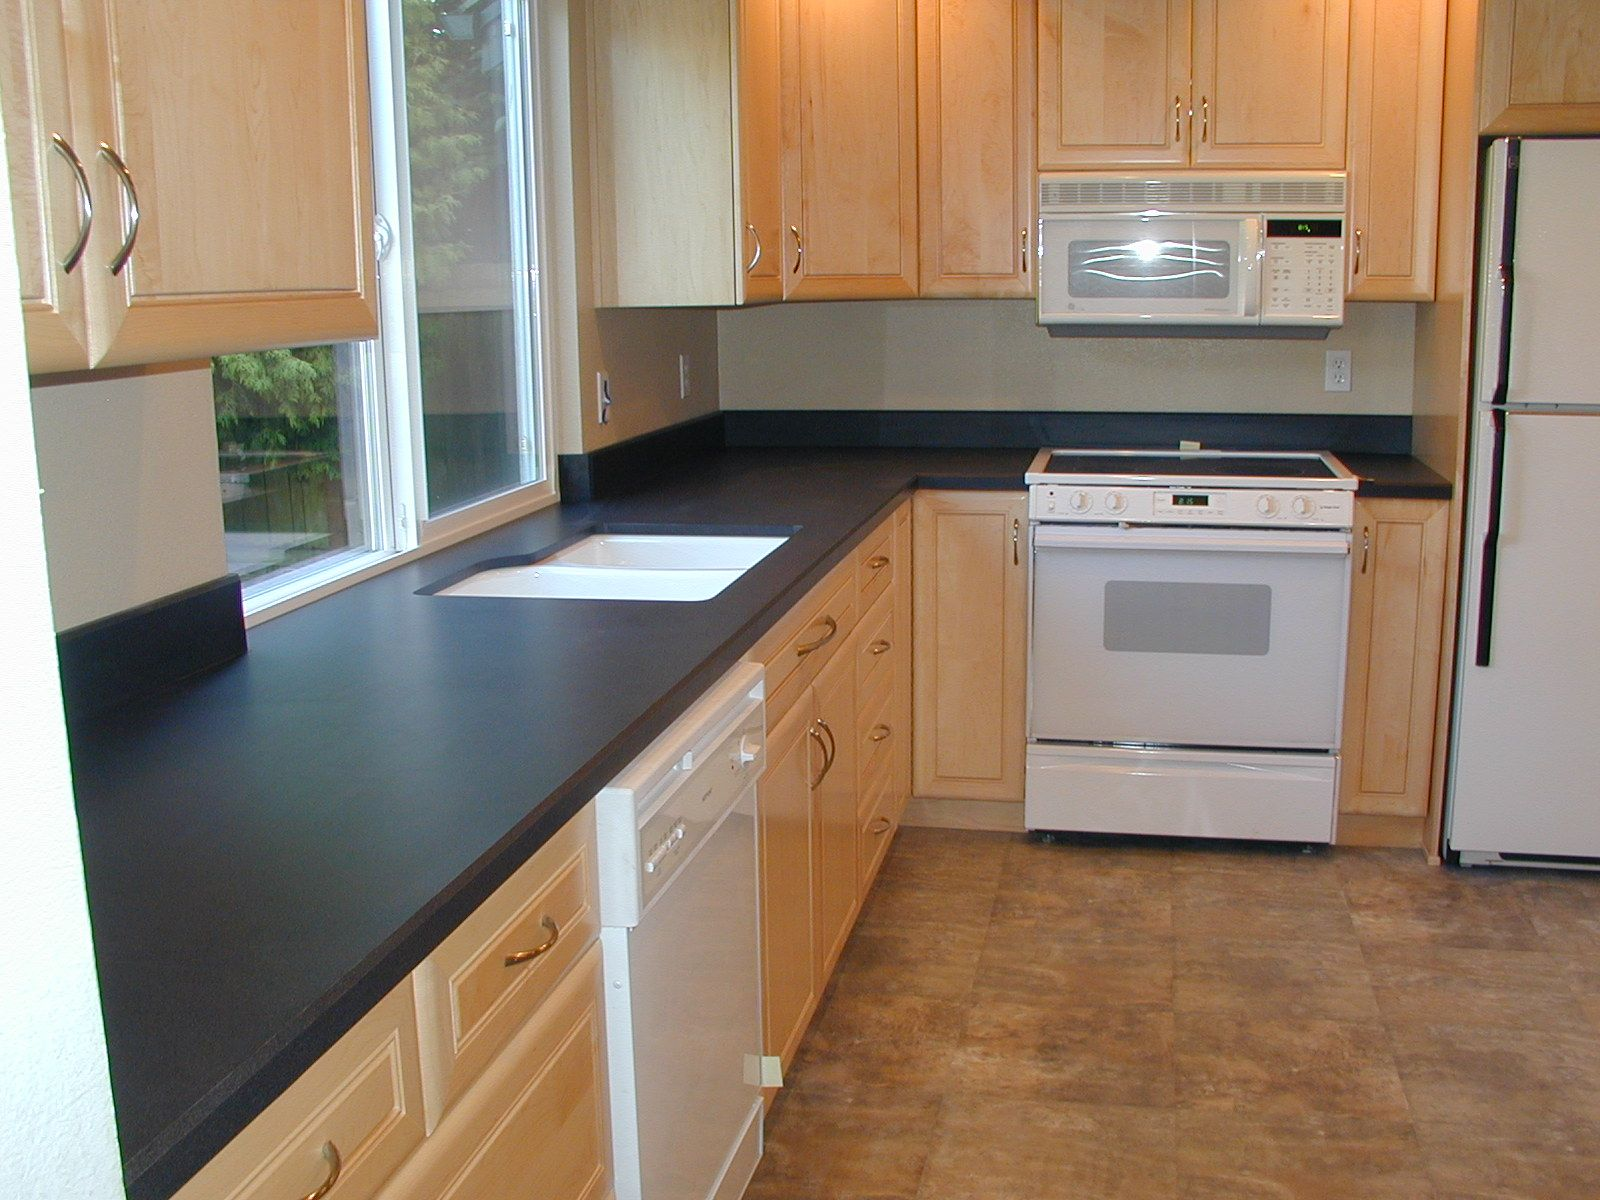 Kitchen Ideas With Dark Countertops Countertop Design